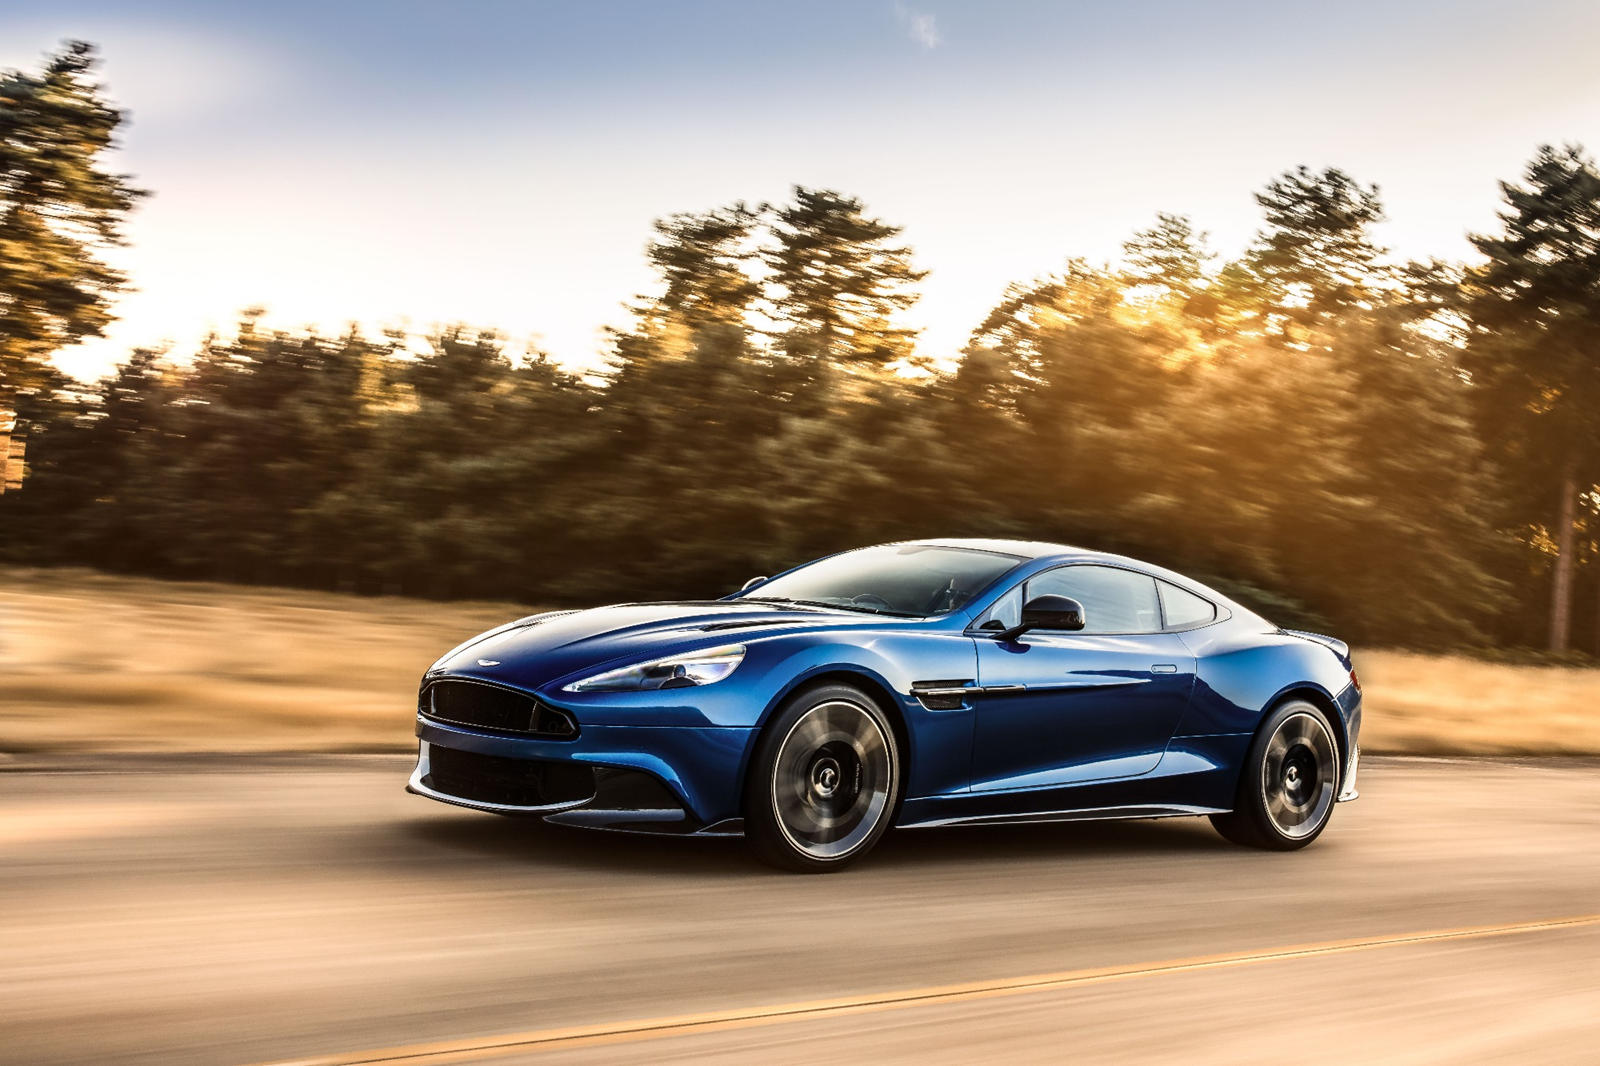 2018 aston martin vanquish s review, trims, specs and price - carbuzz